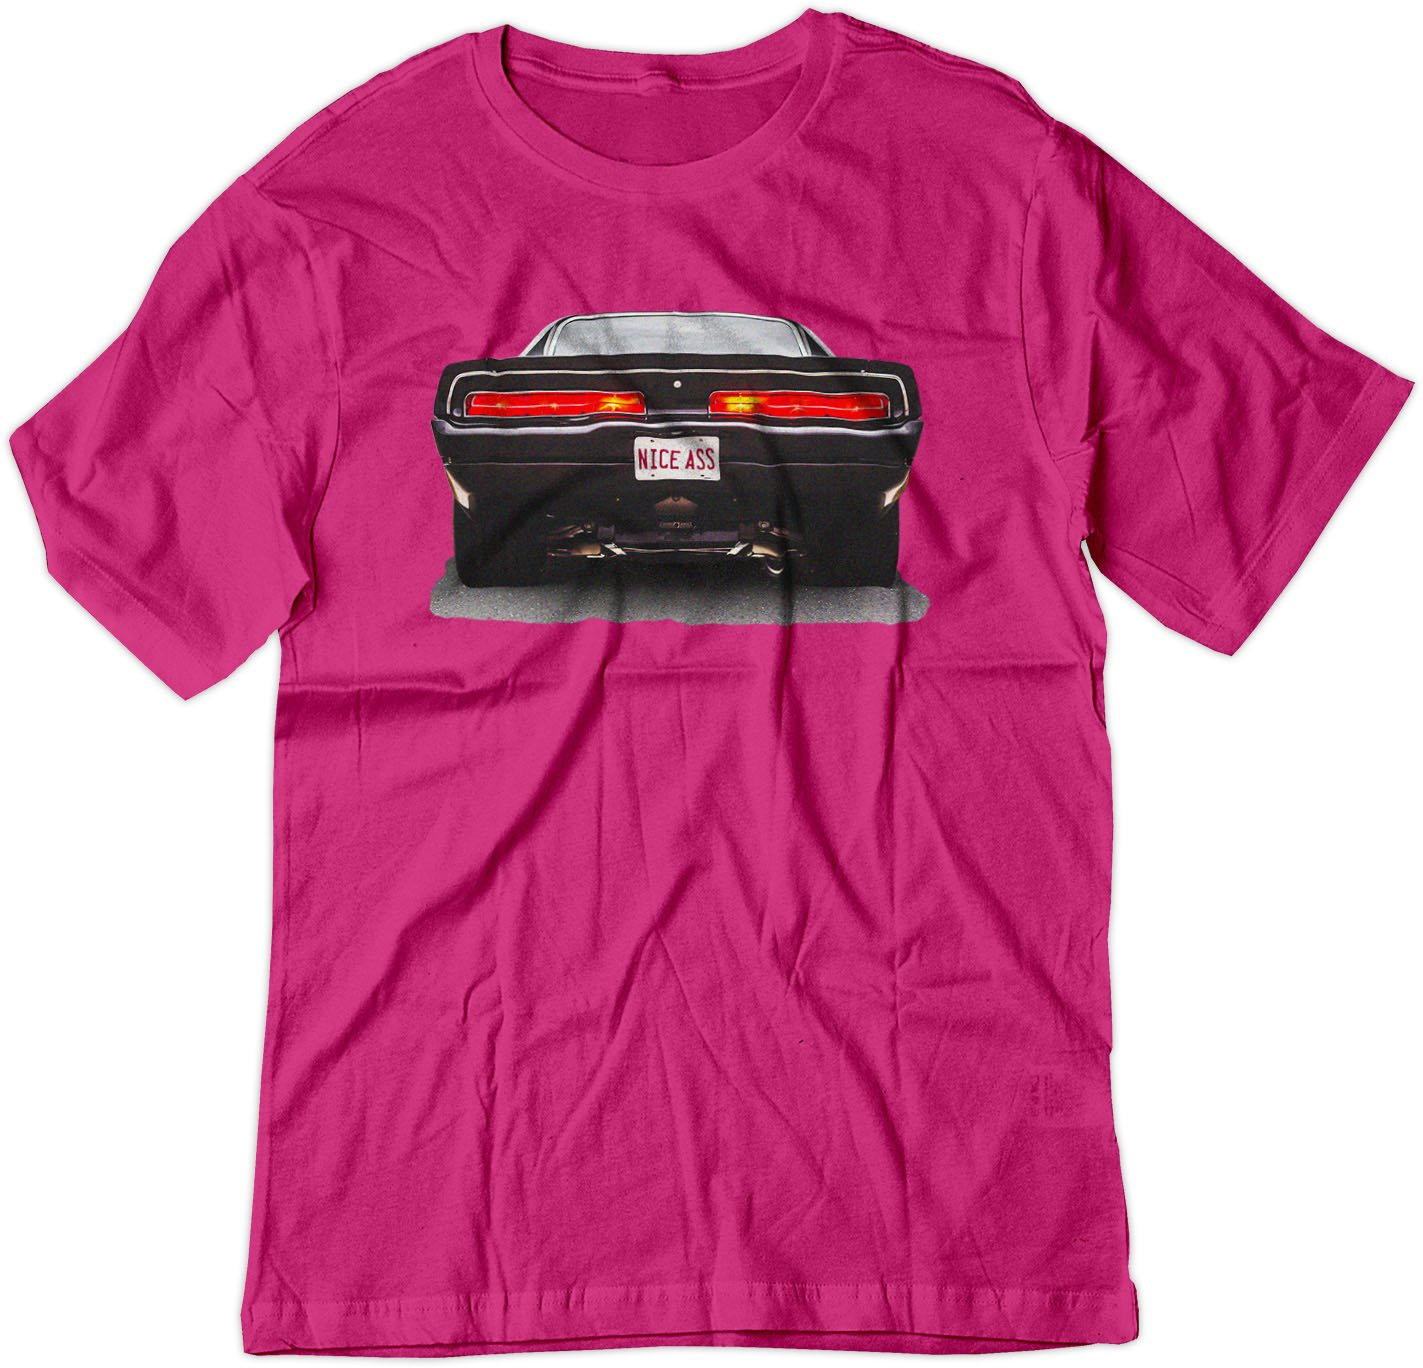 Bsw Mens Nice Ass 1969 Dodge Charger V8 American Muscle Color Chart Shirt Clothing